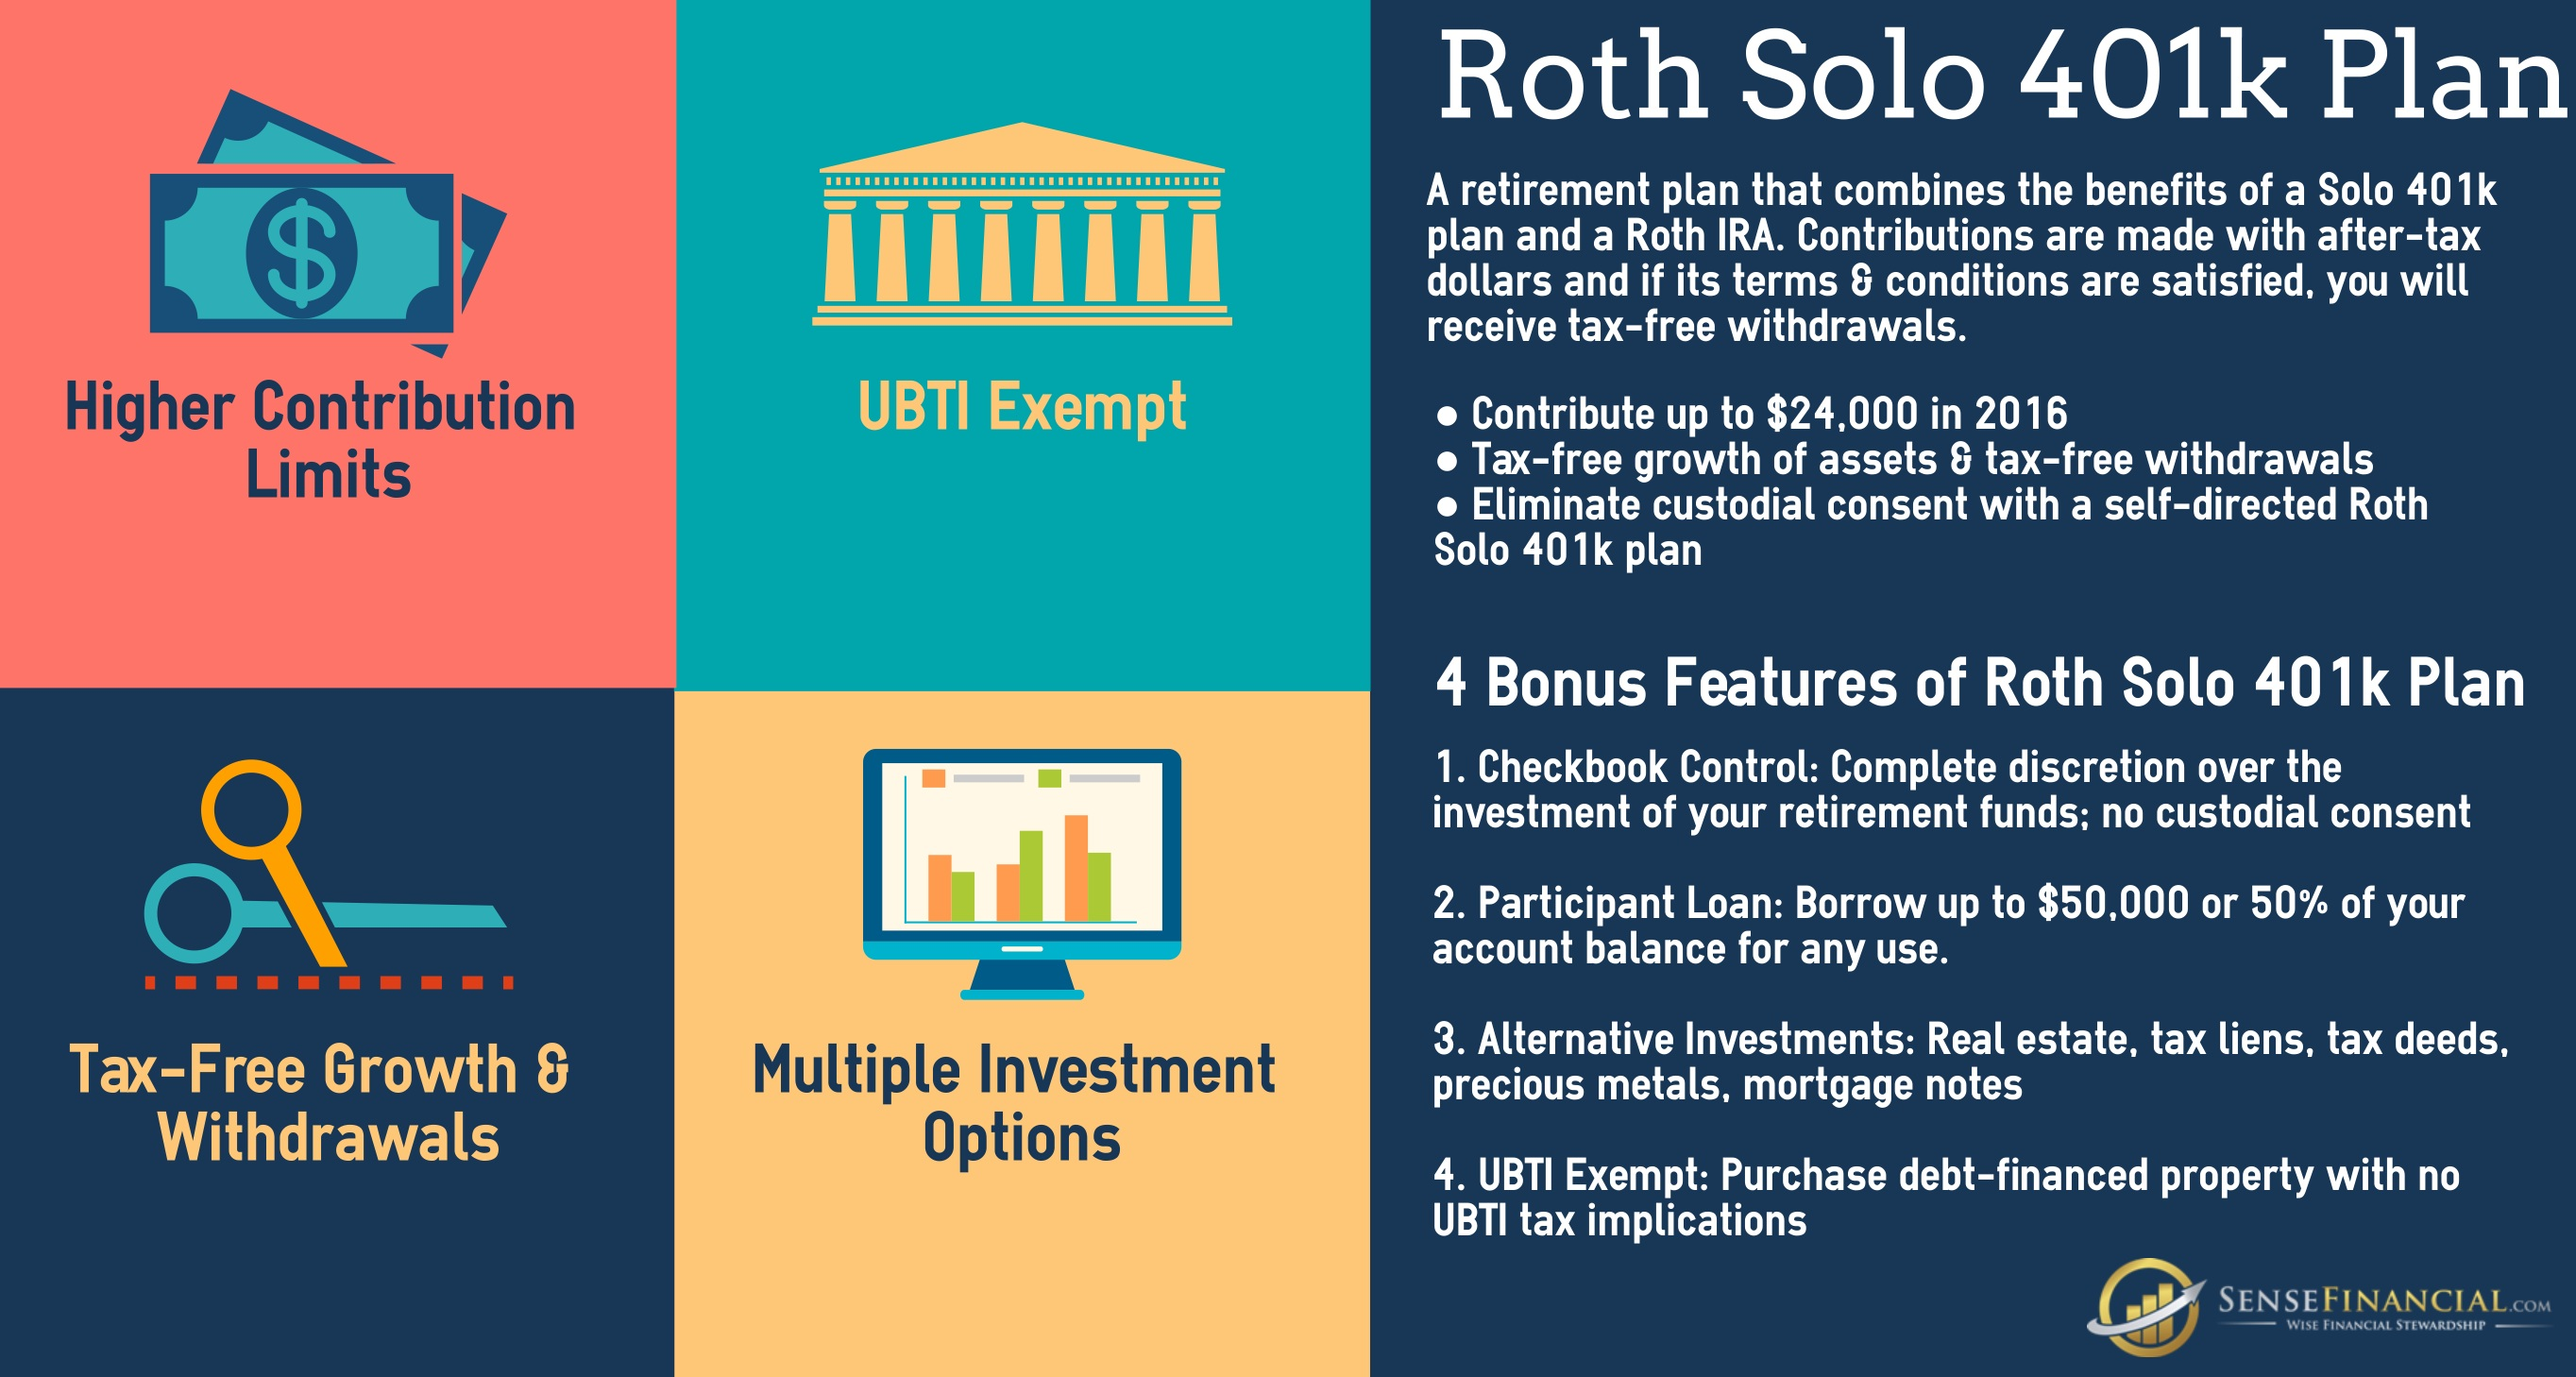 infographics: why choosing a roth solo 401 k plan makes sense?